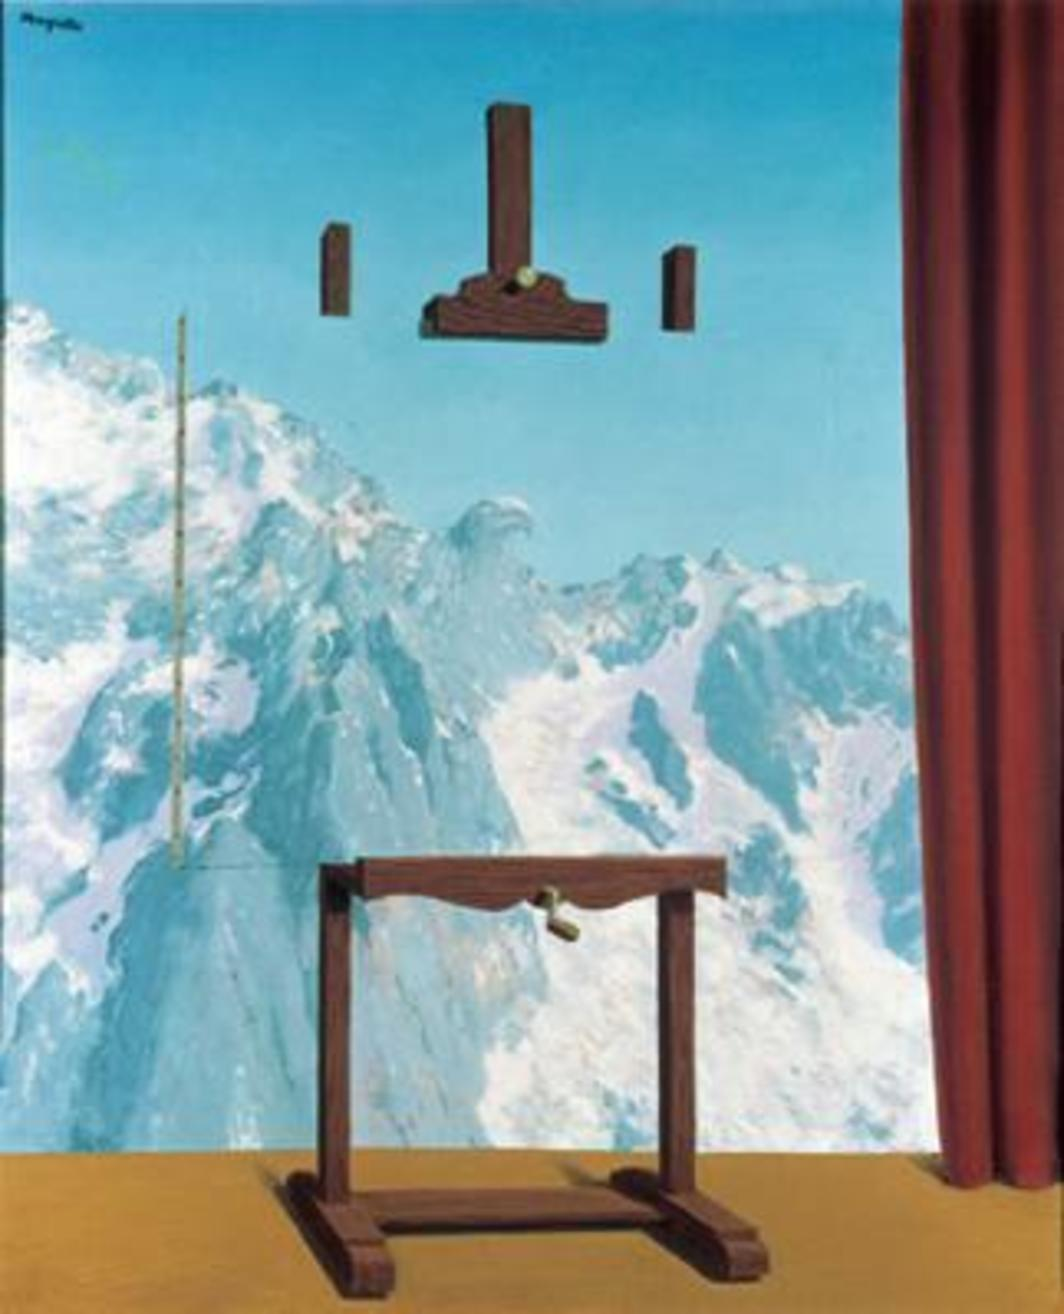 "René Magritte, L'Appel des cimes (The call of the peaks), 1943, oil on canvas, 25 5/8 x 21 1/4""."